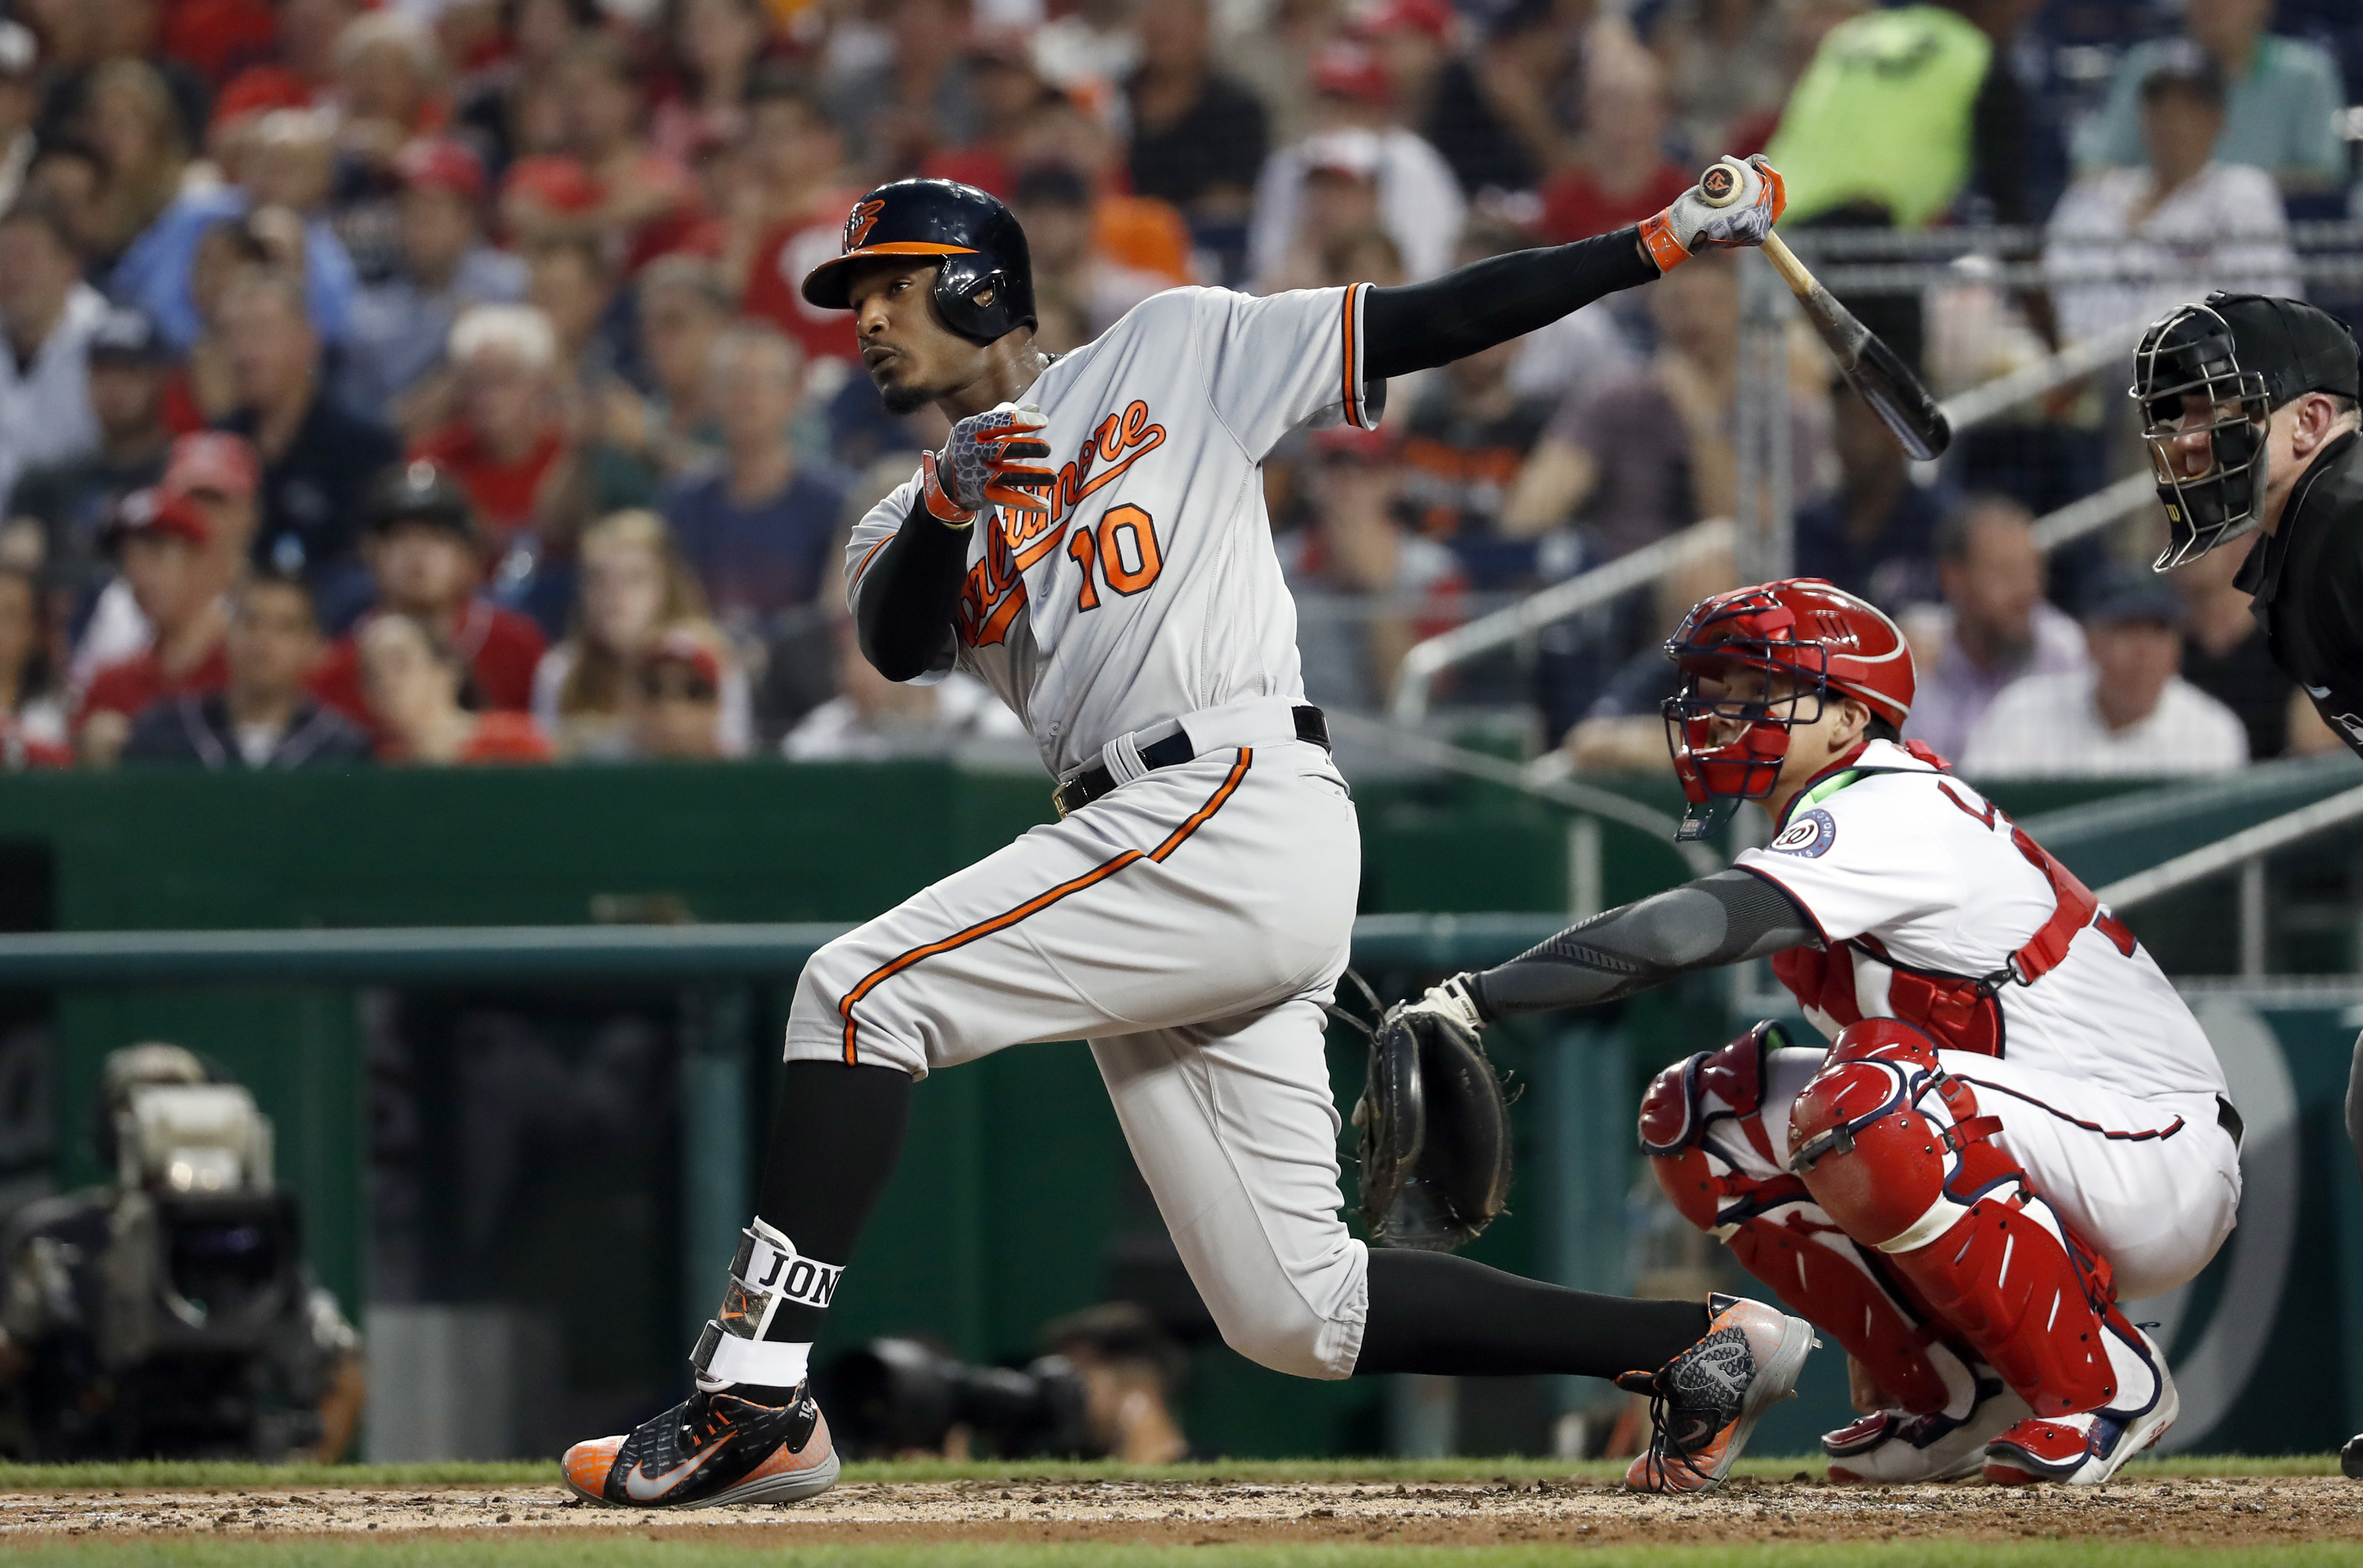 Baltimore Orioles' Adam Jones watches his hit for a double off Washington Nationals starting pitcher Max Scherzer during the fourth inning of a baseball game at Nationals Park Thursday, Aug. 25, 2016, in Washington. (AP Photo/Alex Brandon)